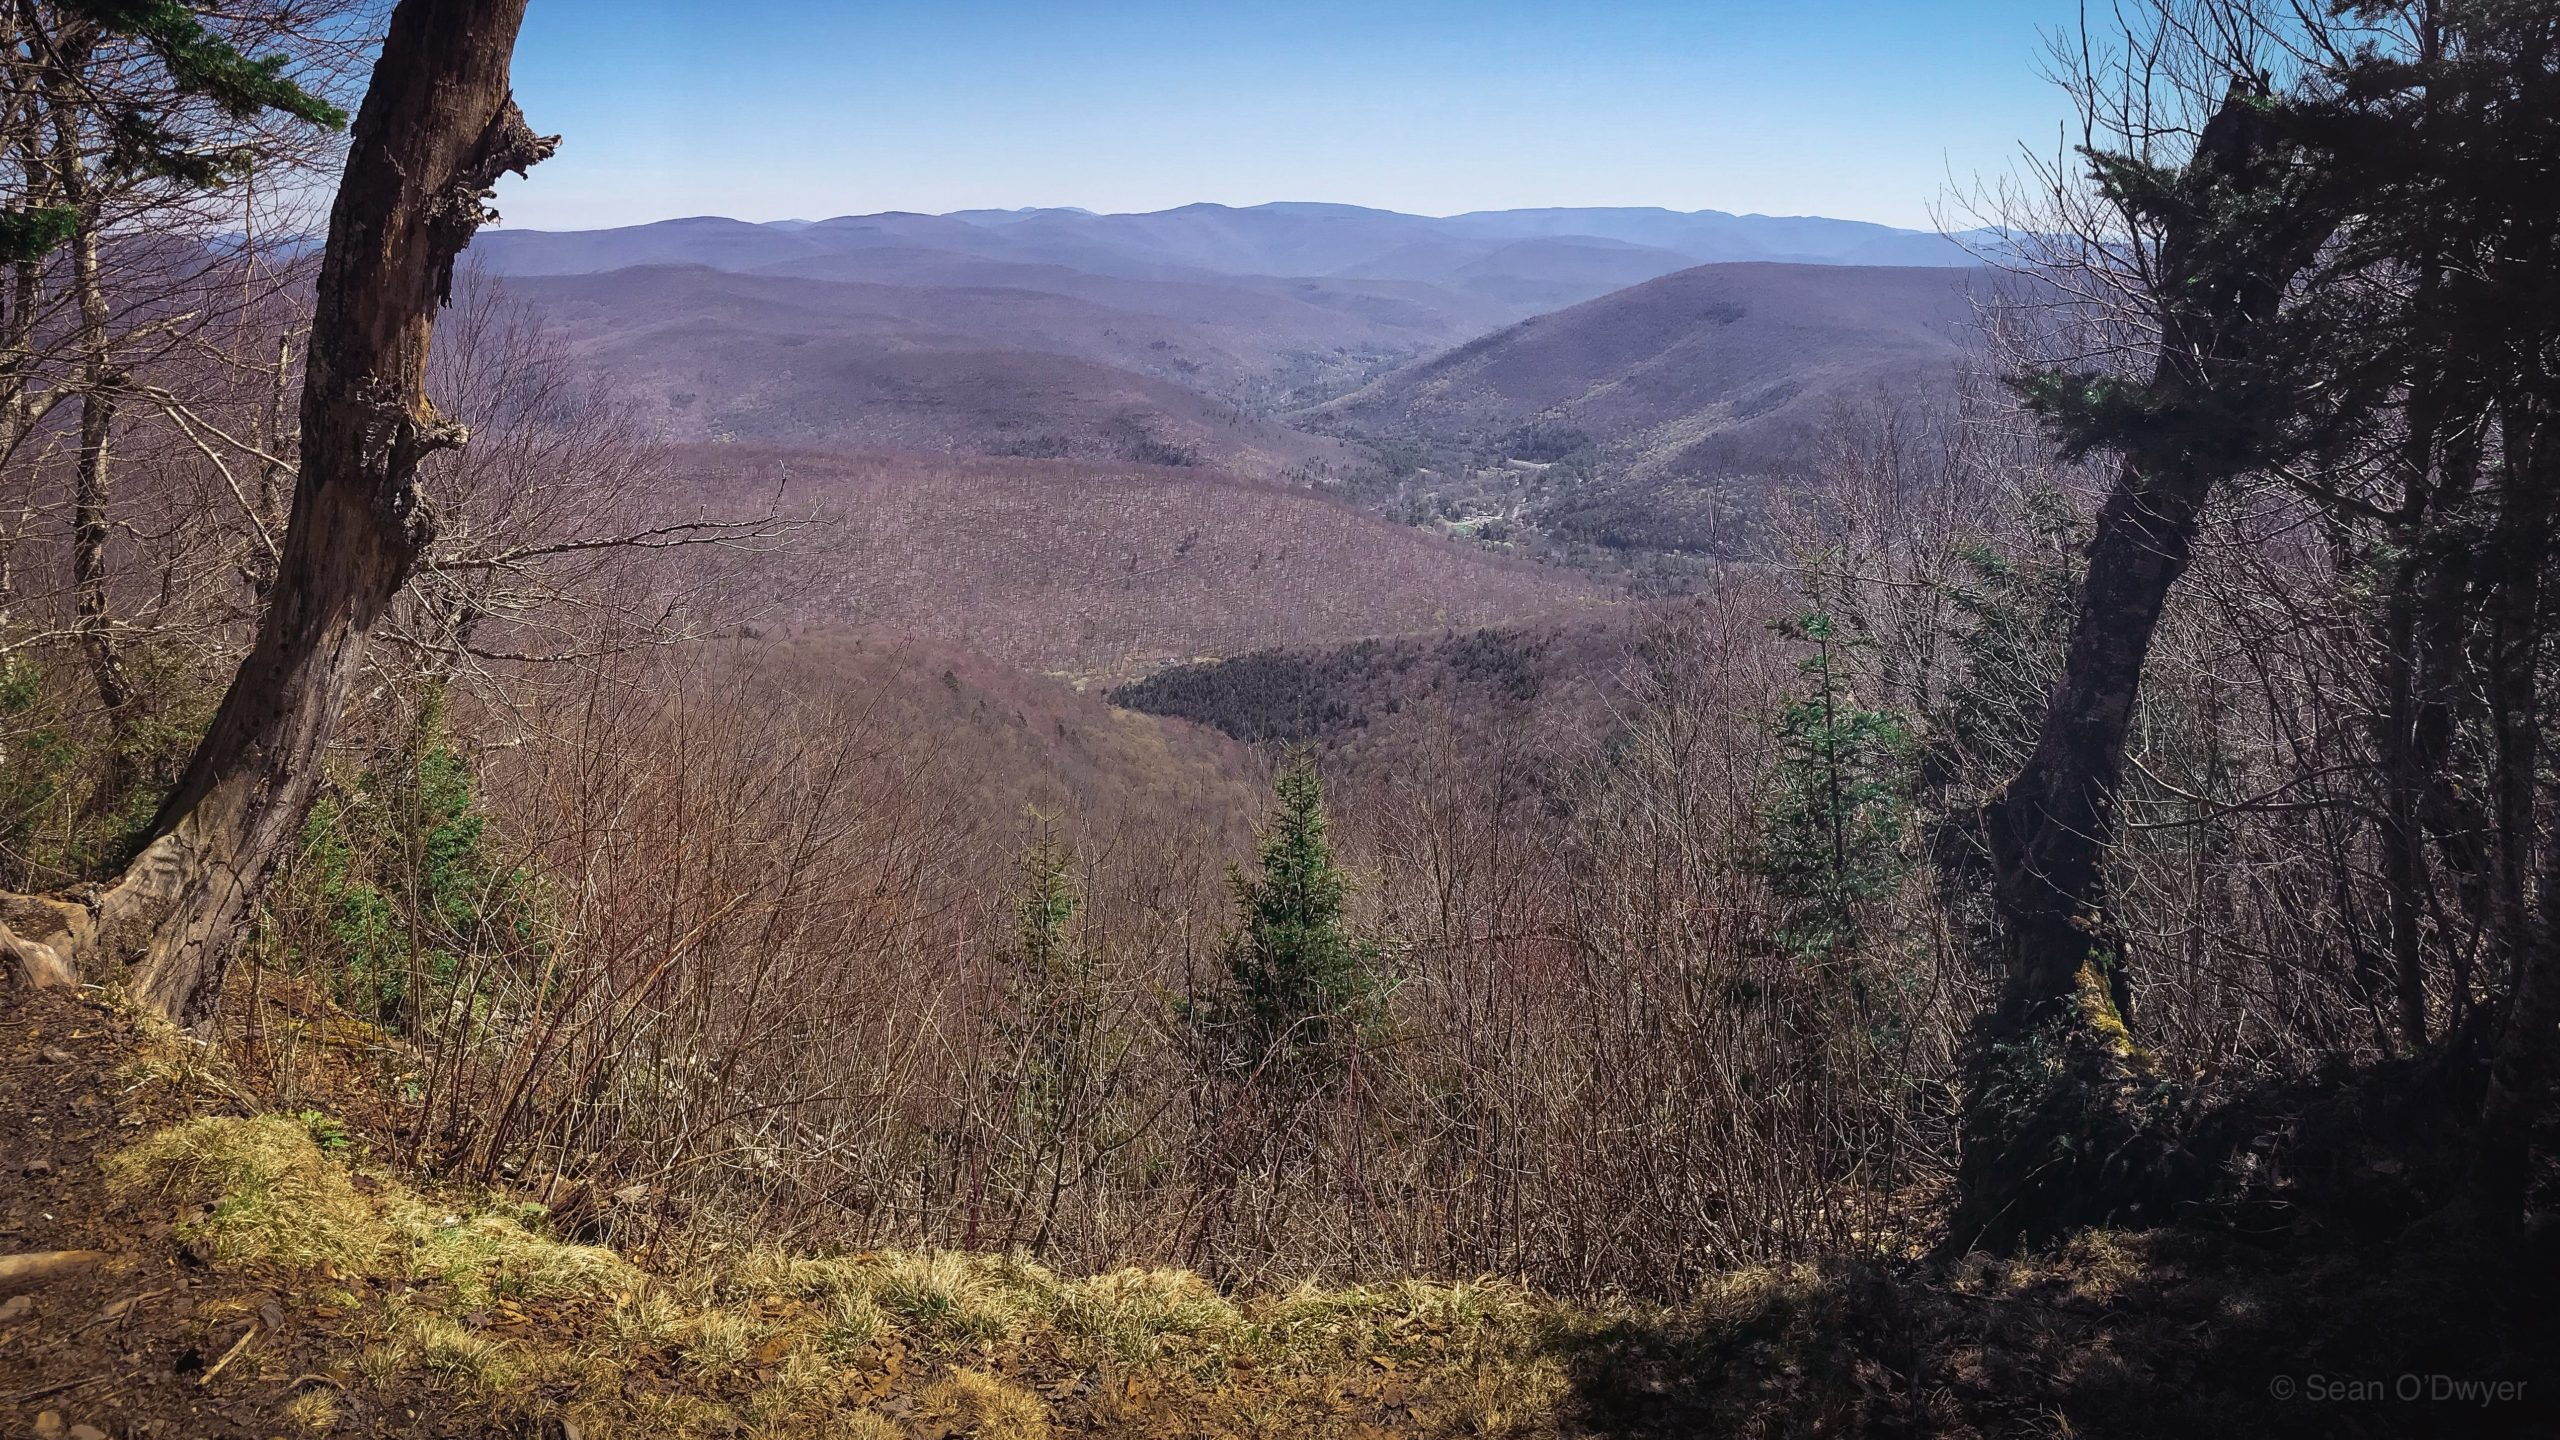 scenic view of Catskills mountains